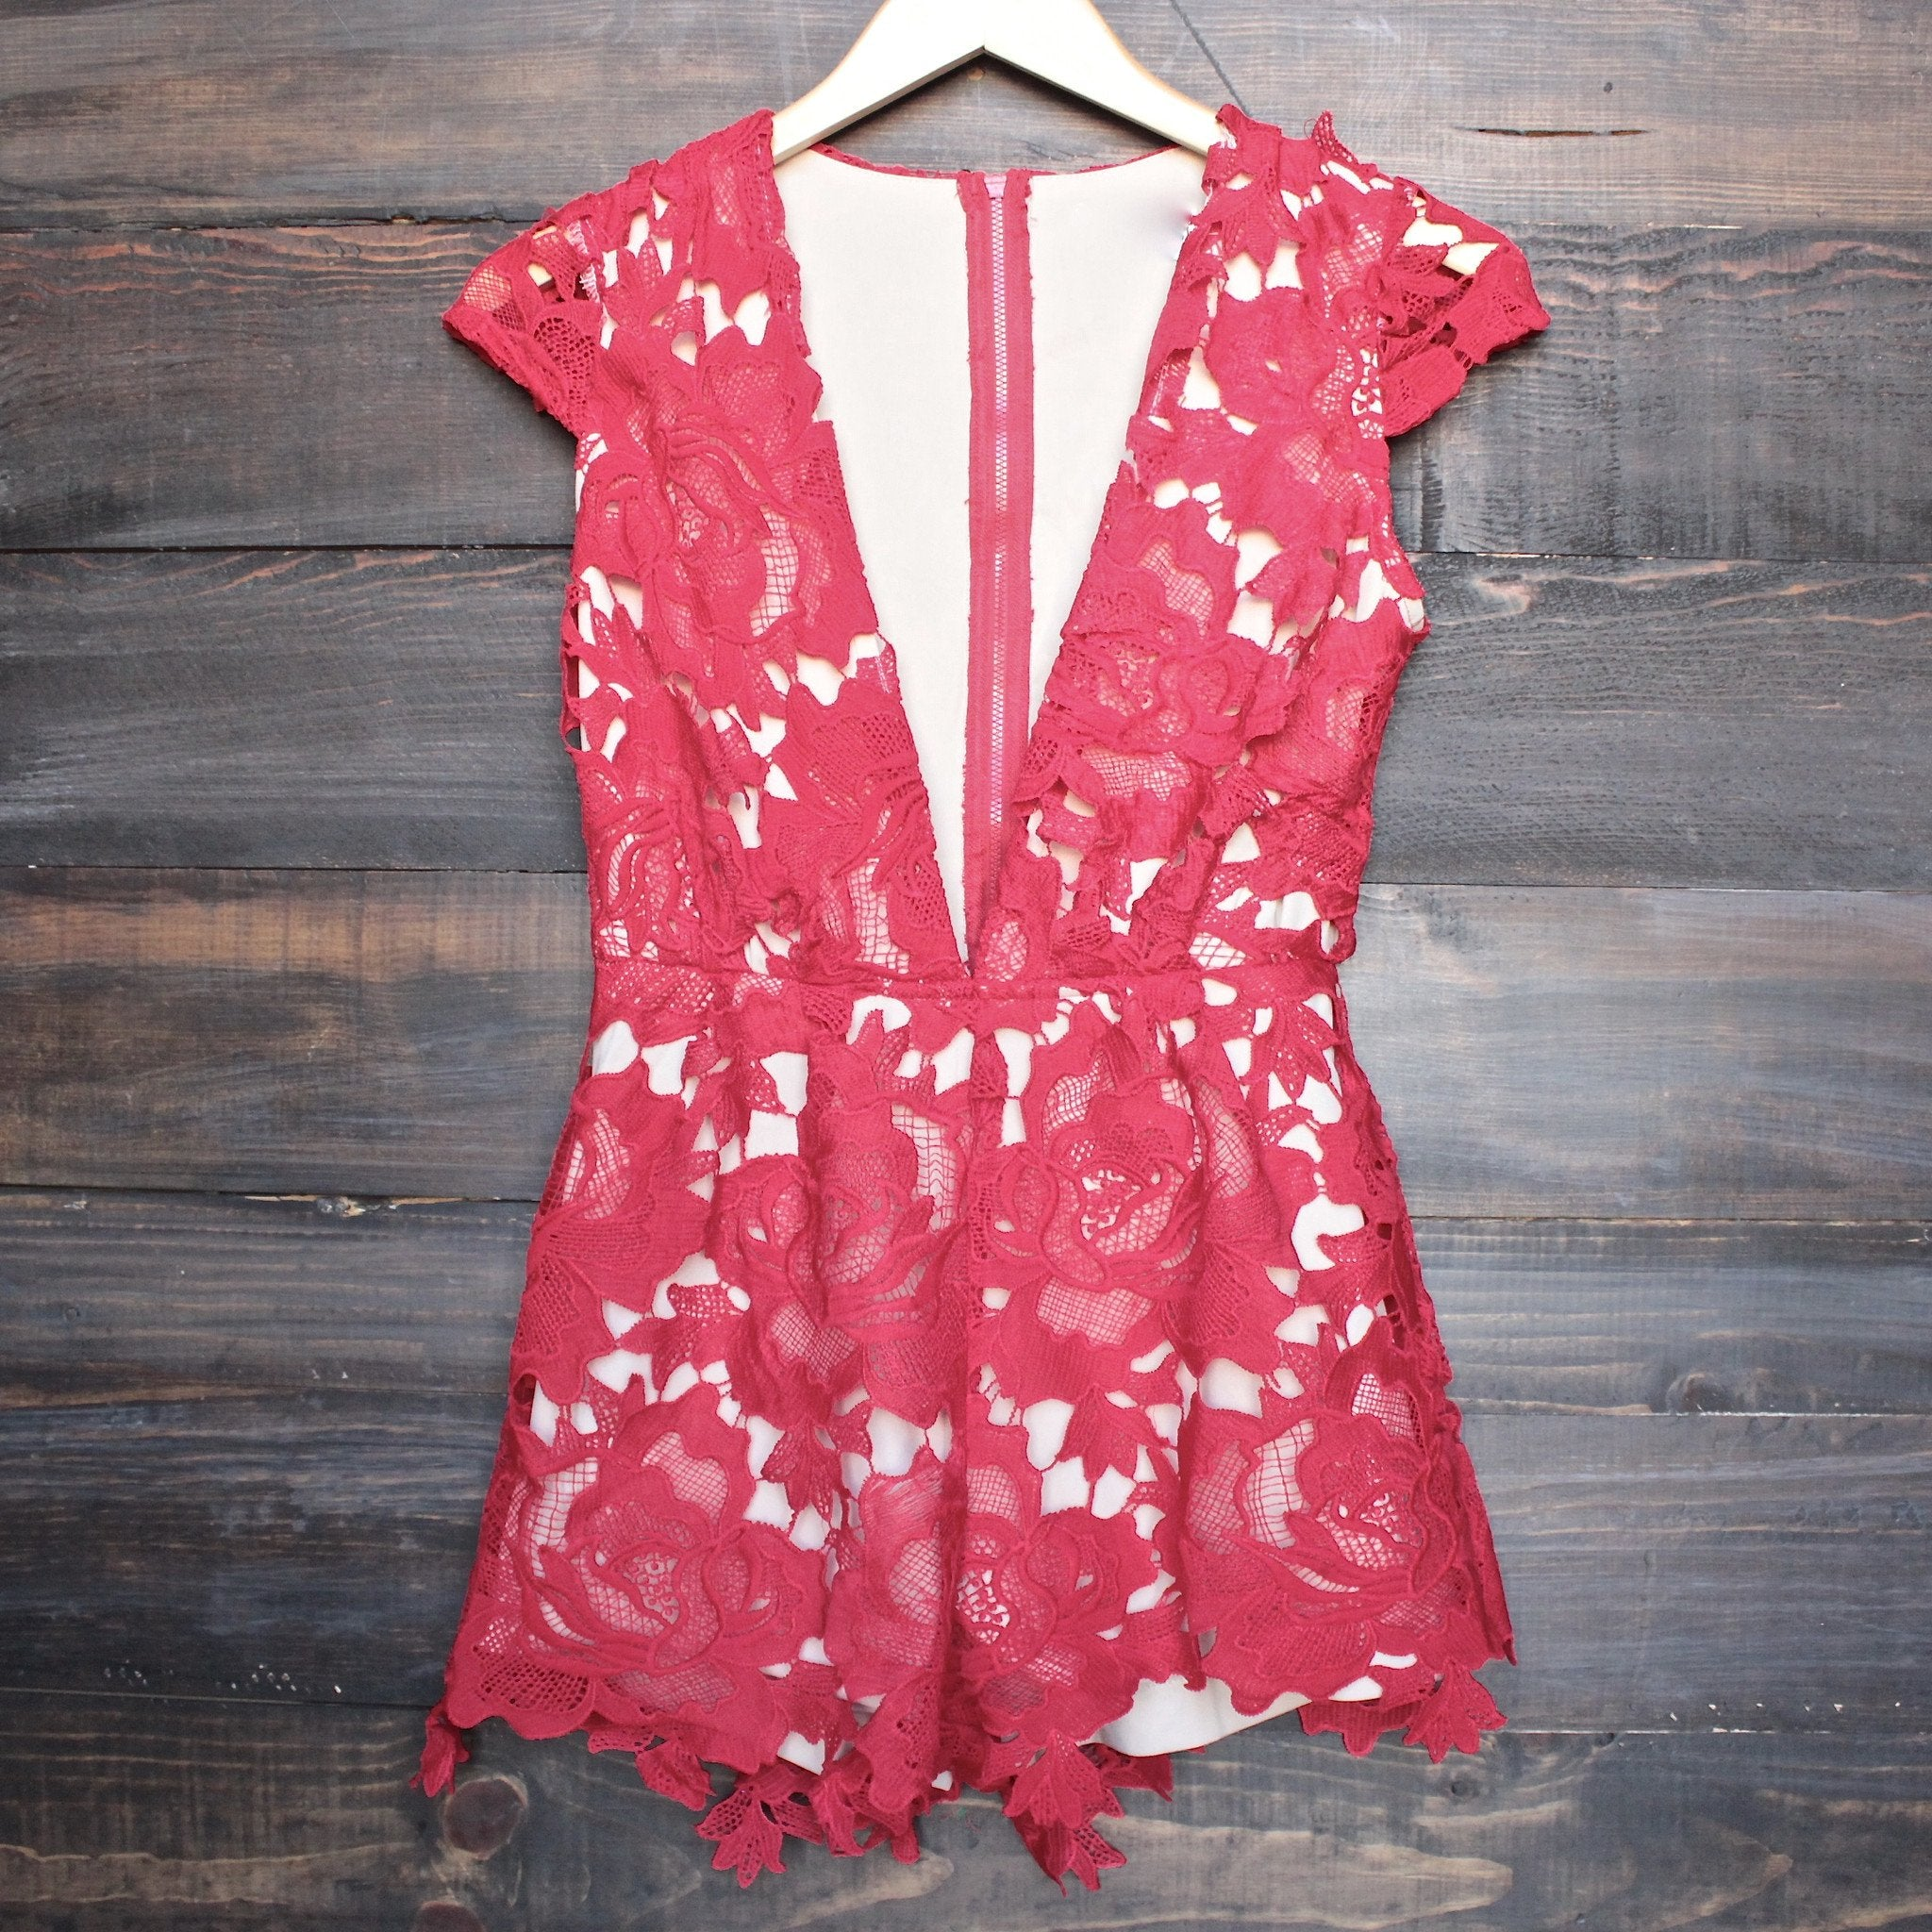 floral appliqué deep plunge tailored romper - red - shophearts - 1